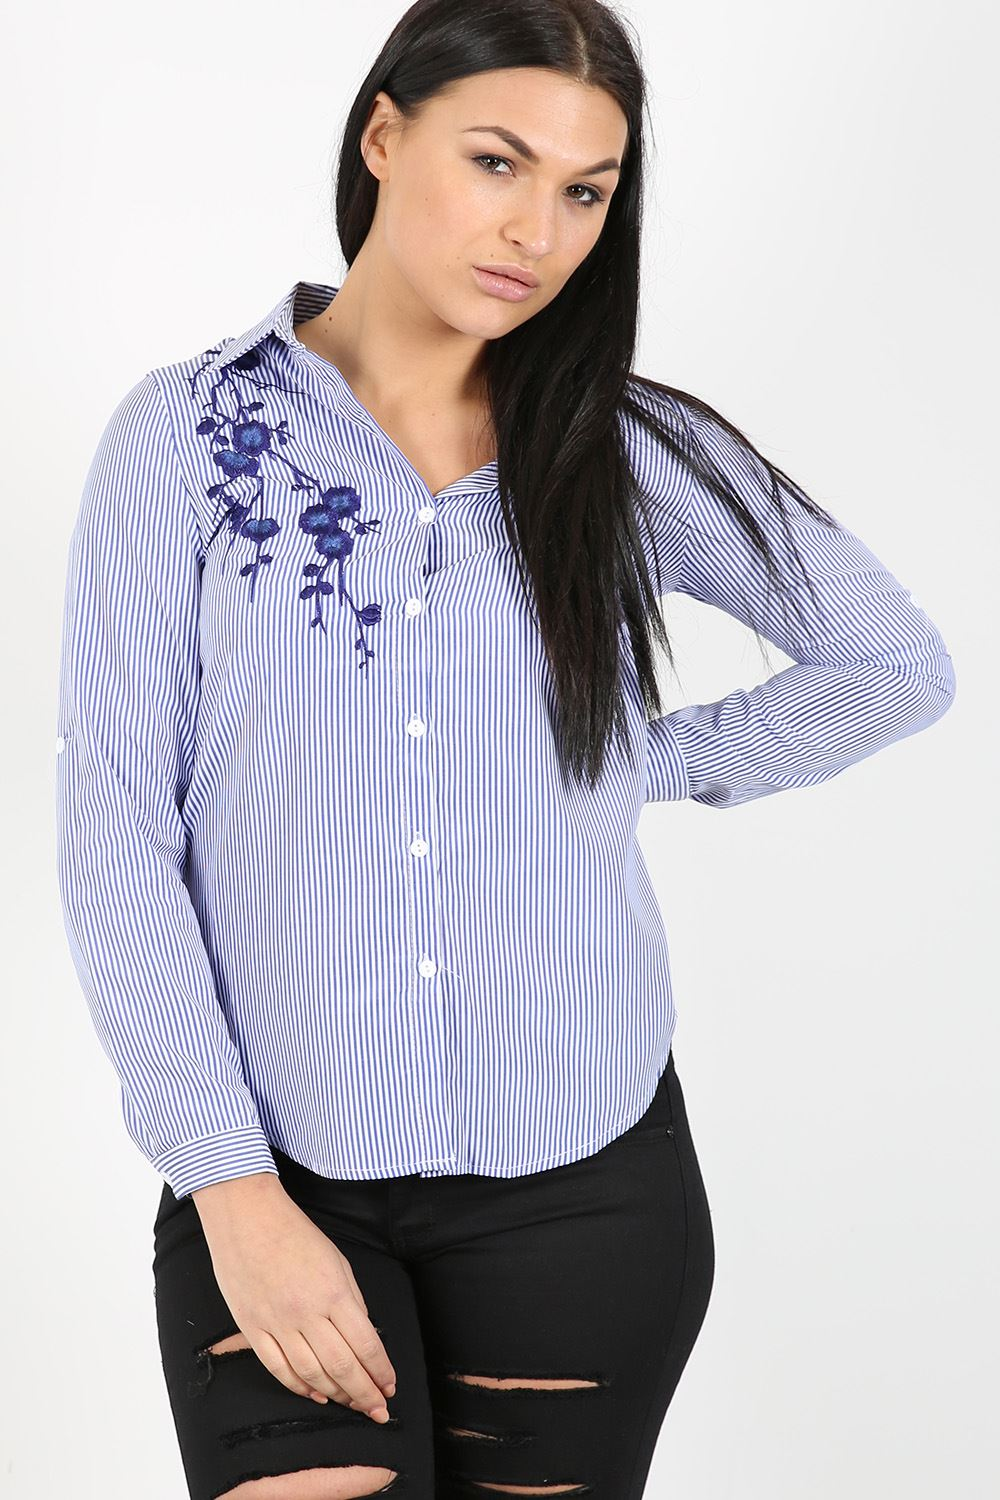 Ladies womens striped embroidered floral blouse shirt for Women s sunscreen shirts